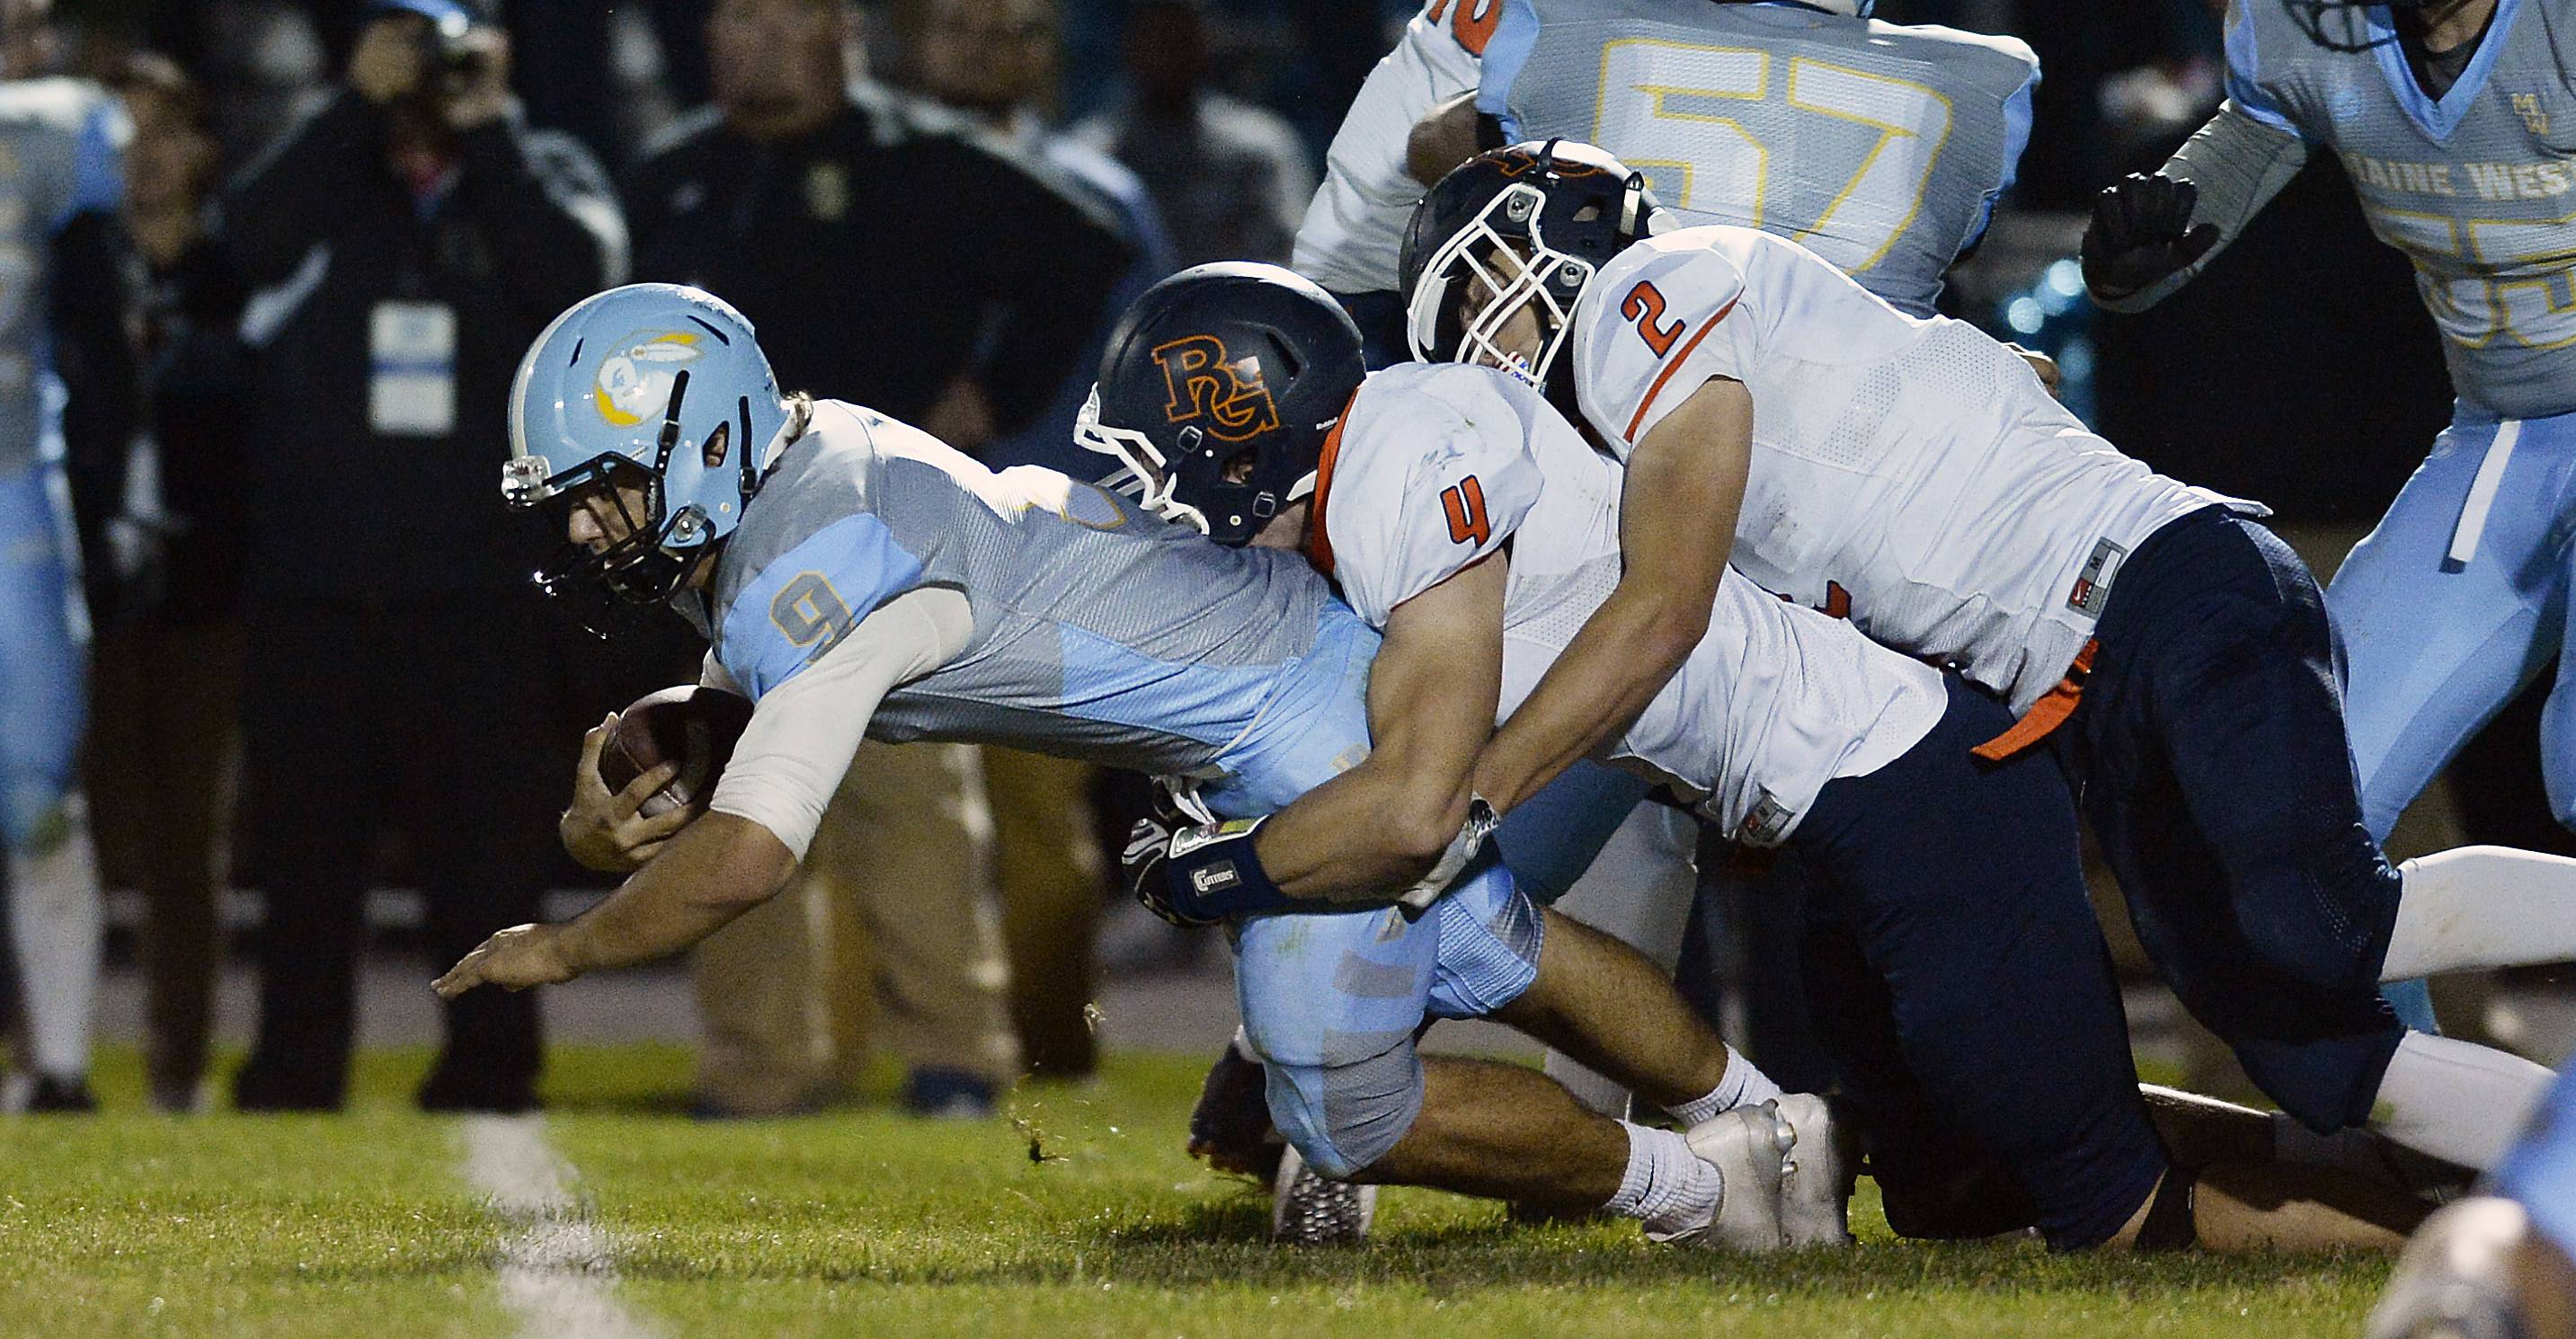 Buffalo Grove's Justin Gold and Tom Trieb bring down Maine West quarterback George Markakis for a loss on Friday in Des Plaines.